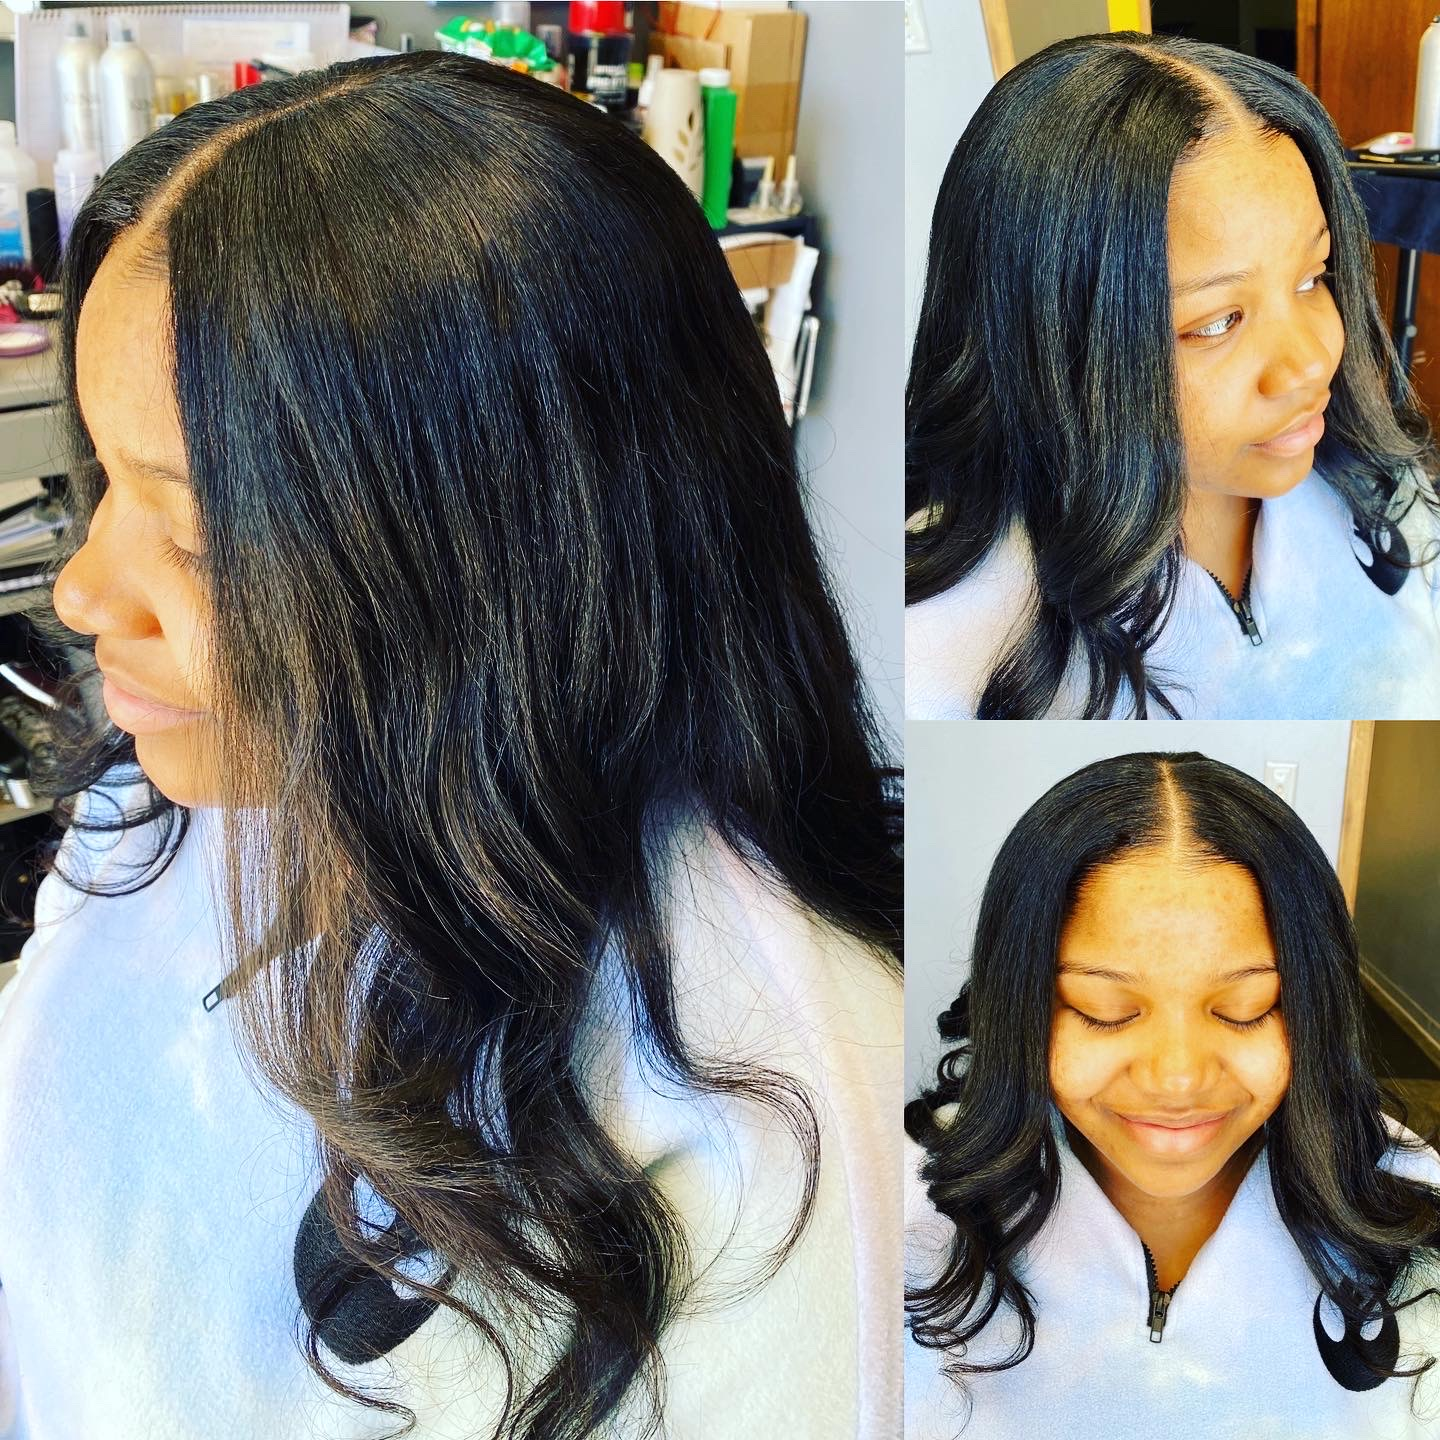 Sew In w/ Leave Out, Wand Curls